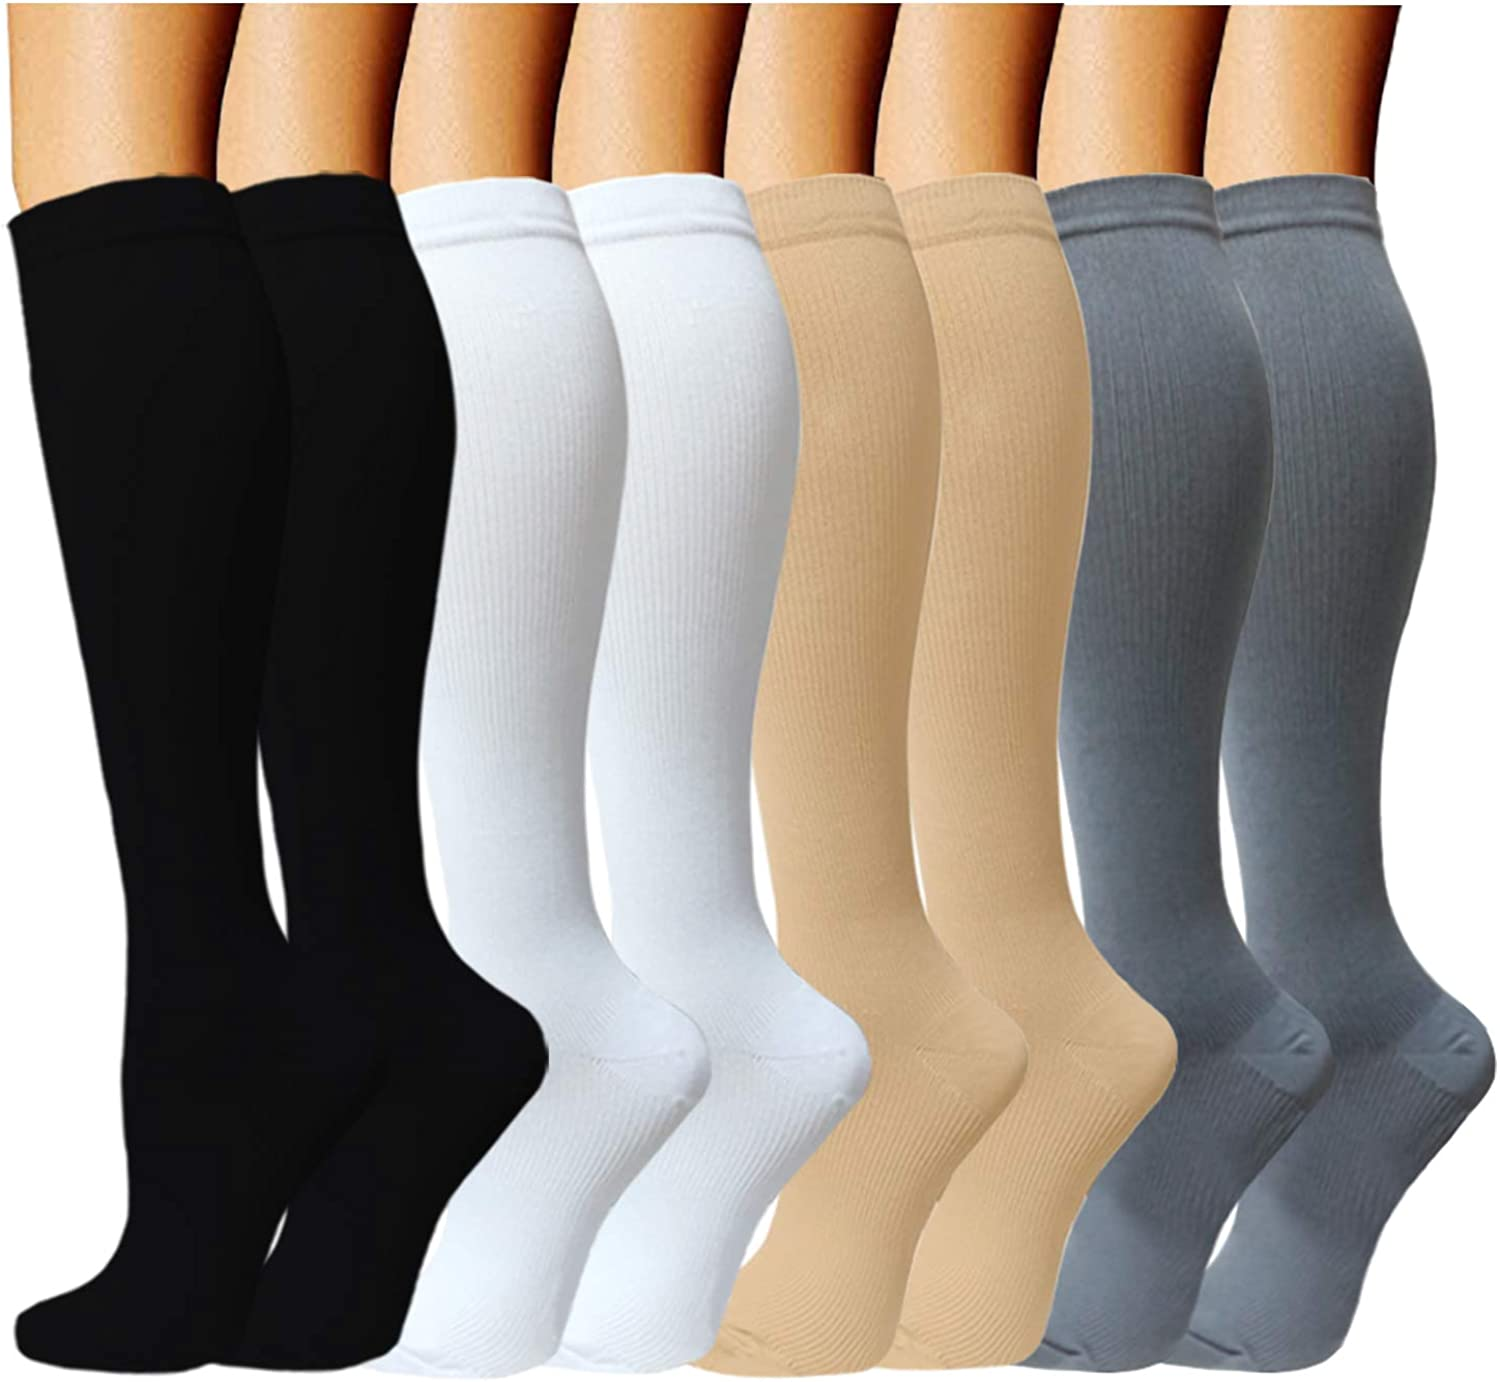 Compression Socks (8 Pairs) for Women & Men 1520mmHg  Best Medical,Running,Nursing,Hiking,Recovery & Flight Socks